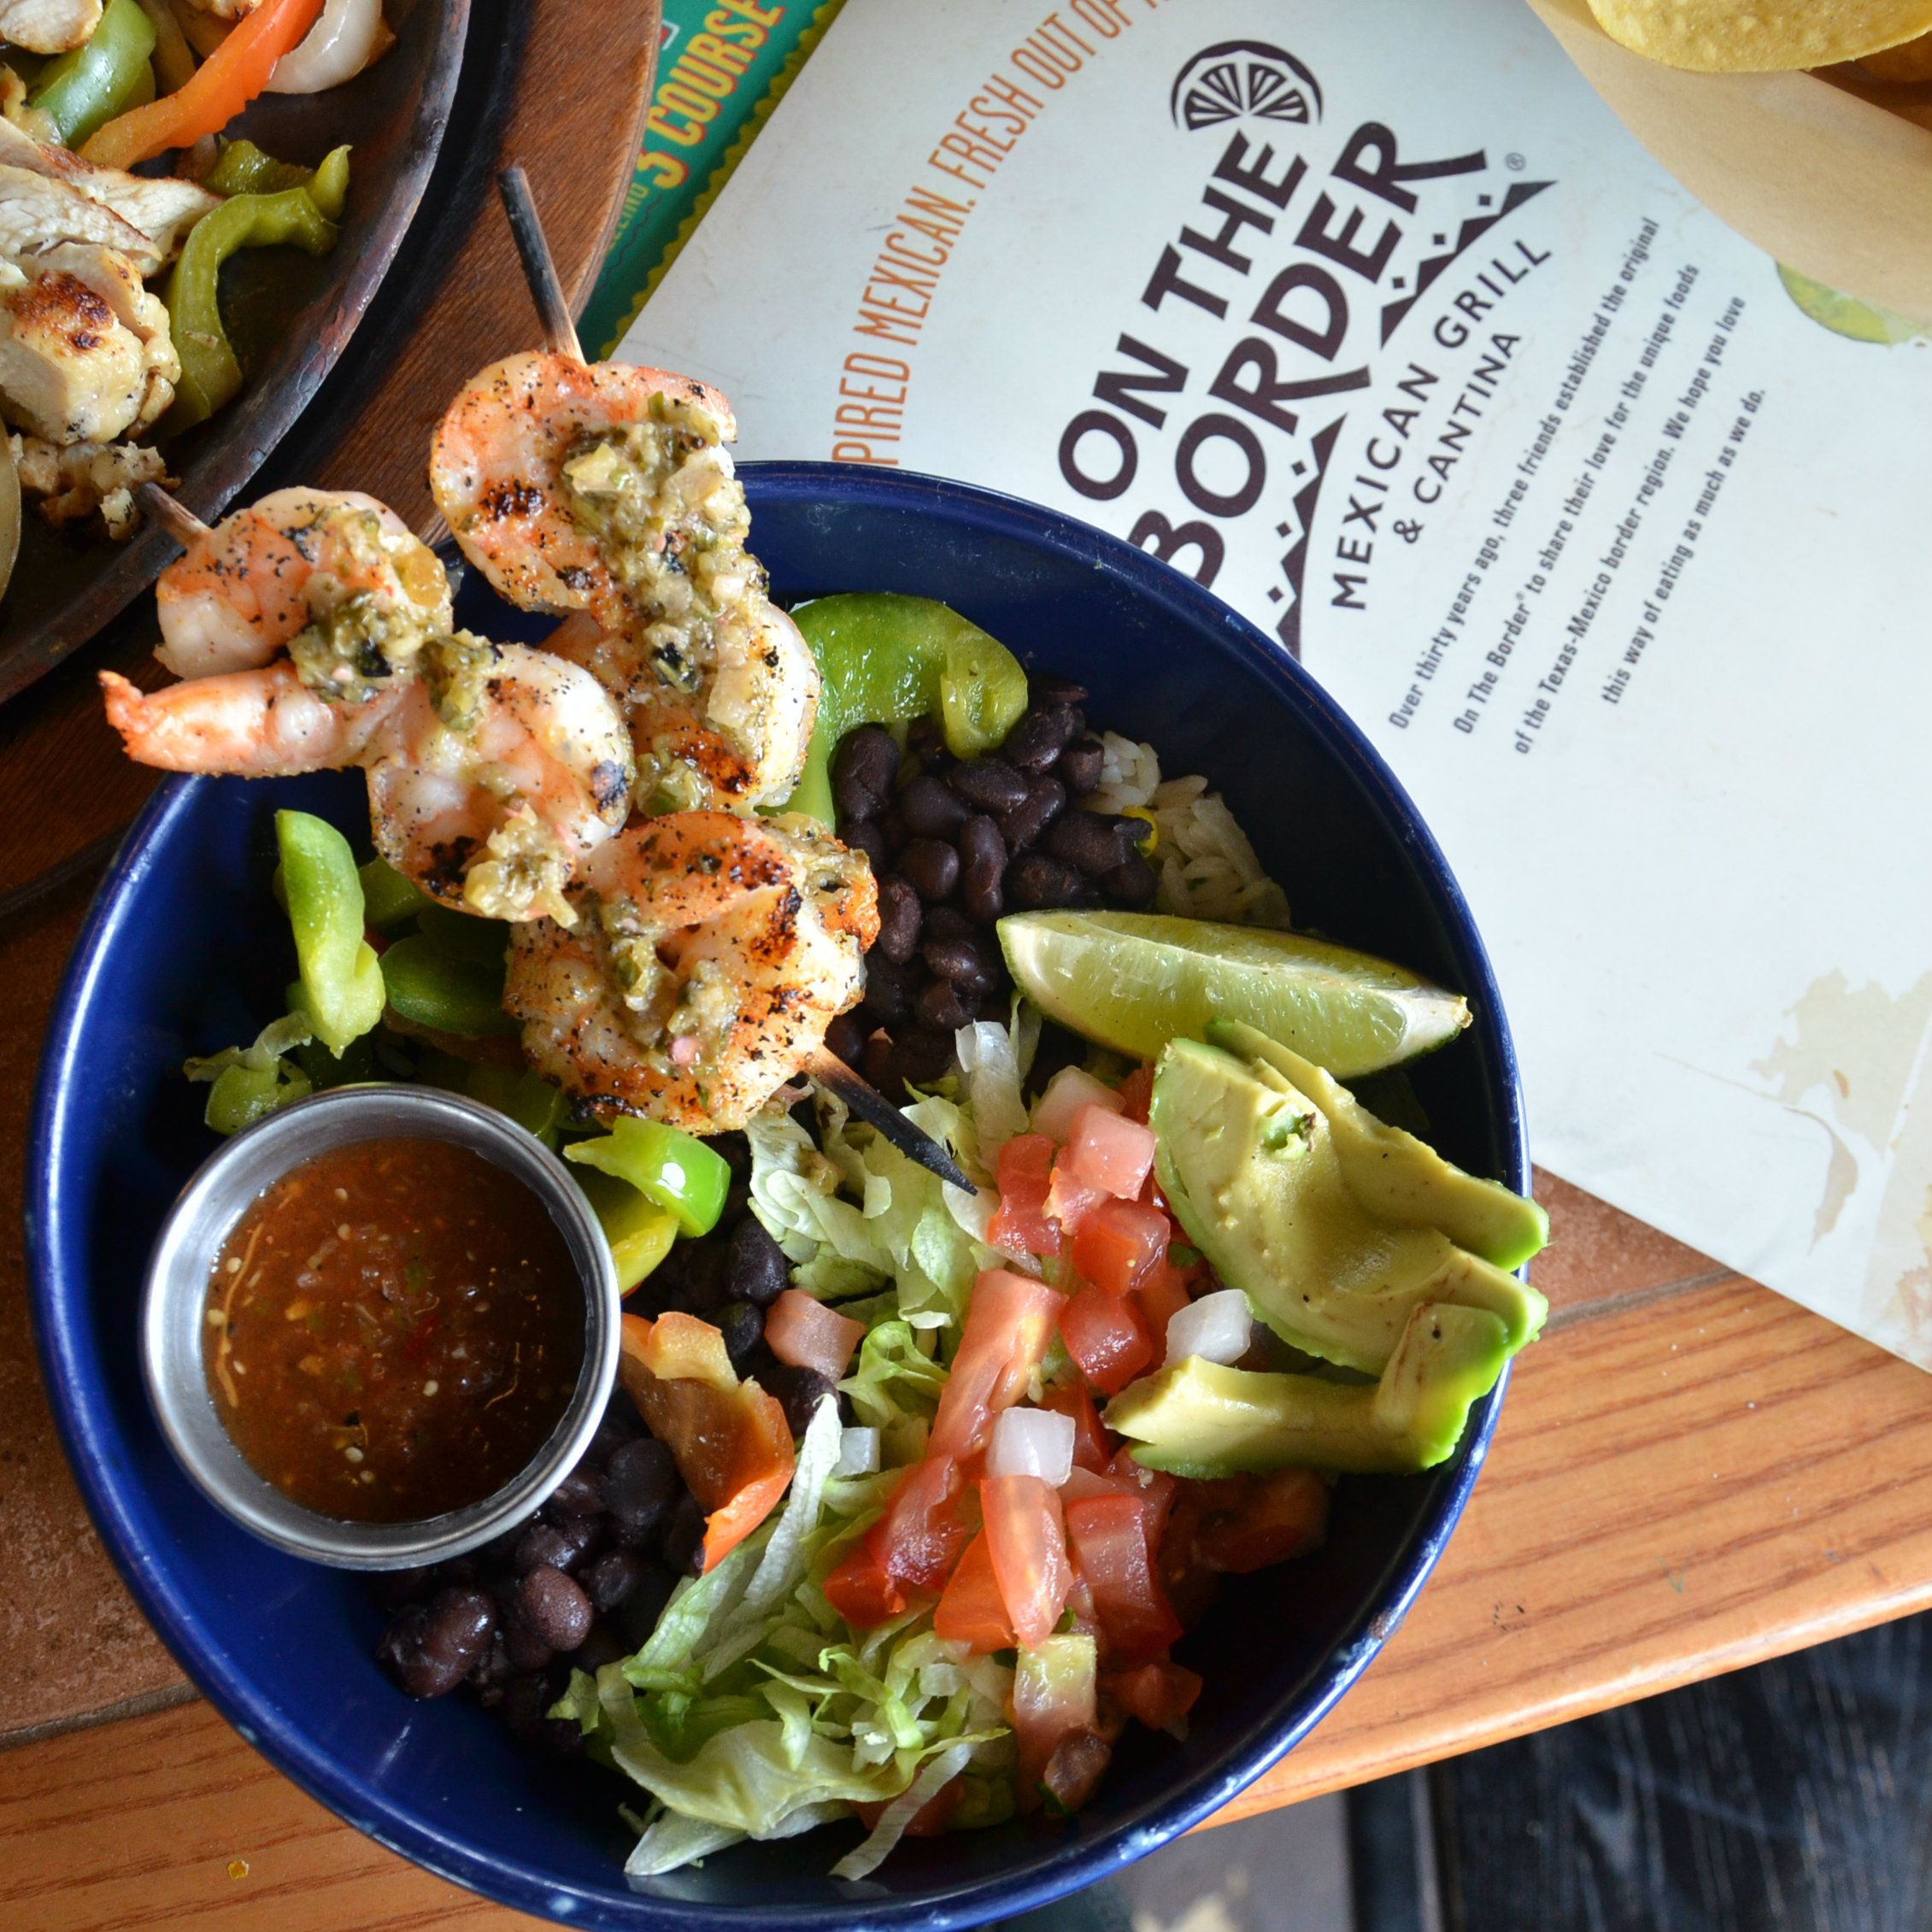 Grilled Shrimp Fresh Veggies And Delicious Rice Are Just Part Of What Make Our Border Bowls So Mouthwatering At On Th Mexican Food Recipes Food Fresh Veggies